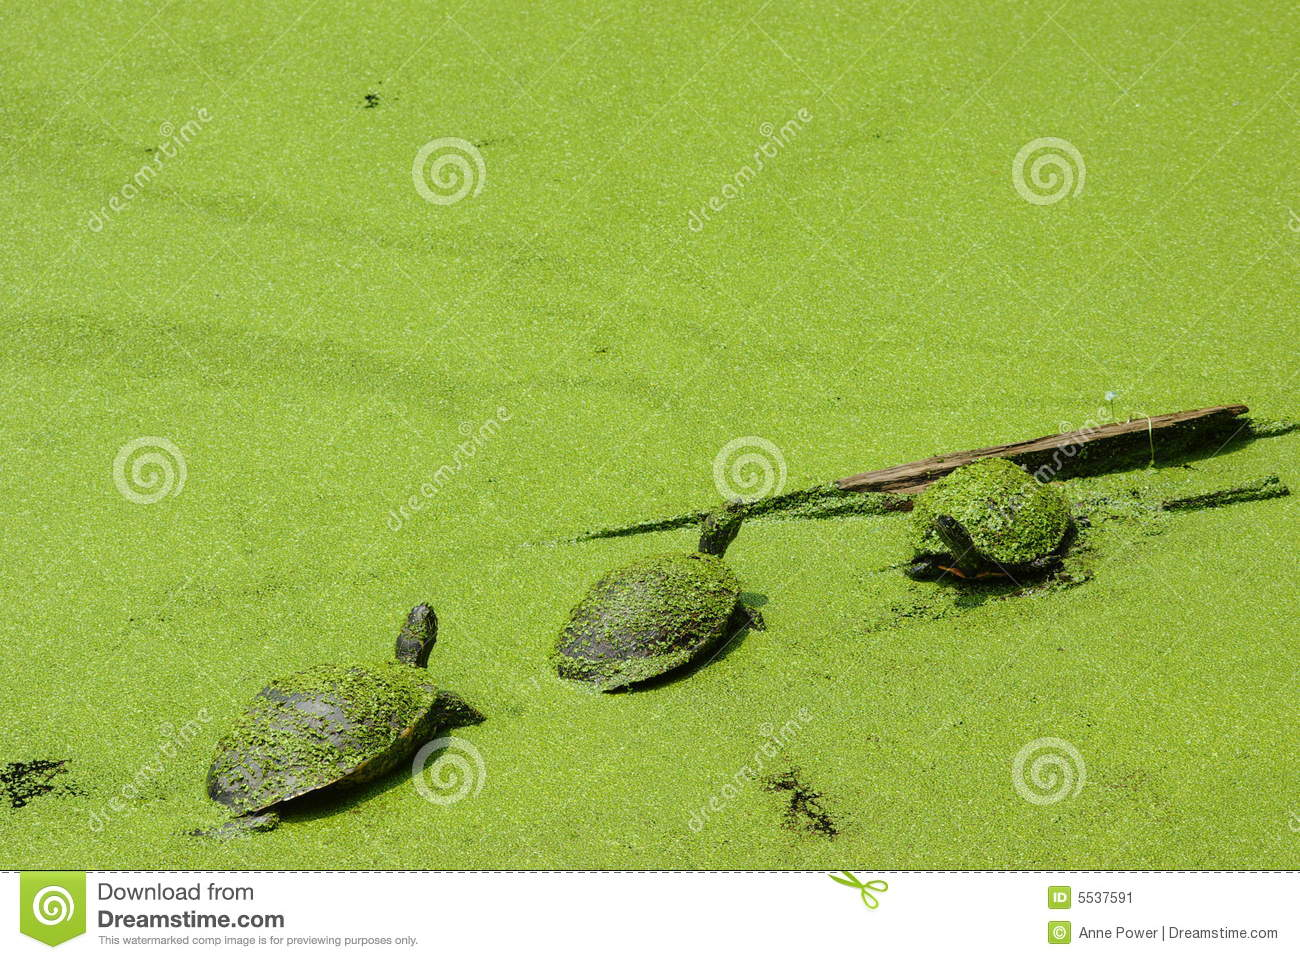 Three Little Turtles Covered in Green